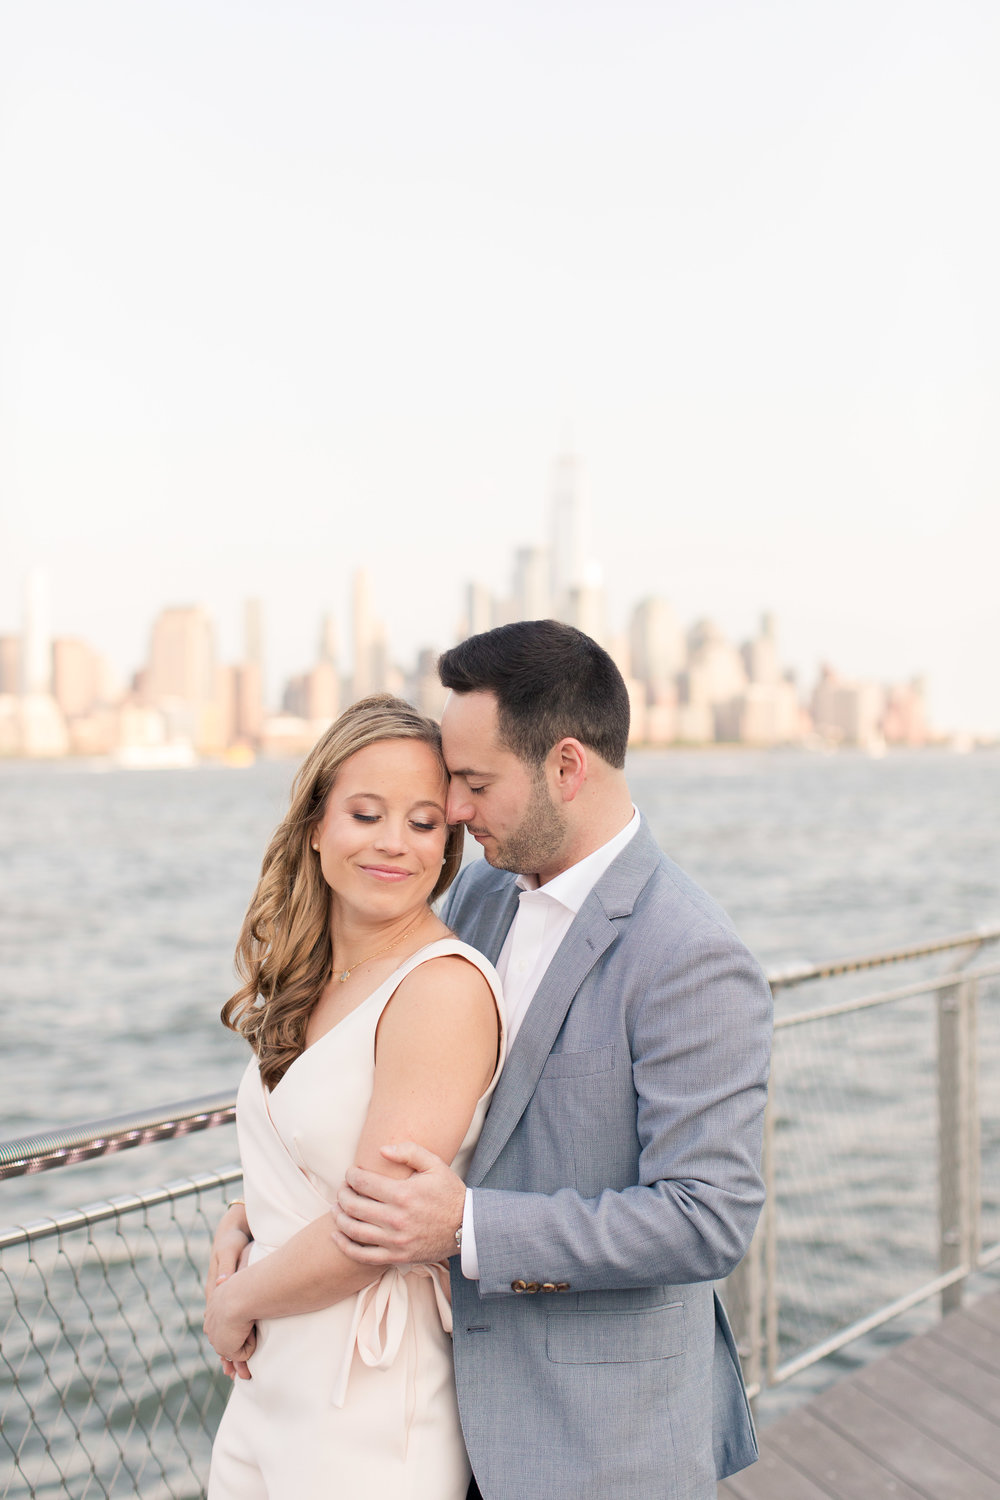 Ultimate Engagement Giveaway - Alyssa & Al - 11